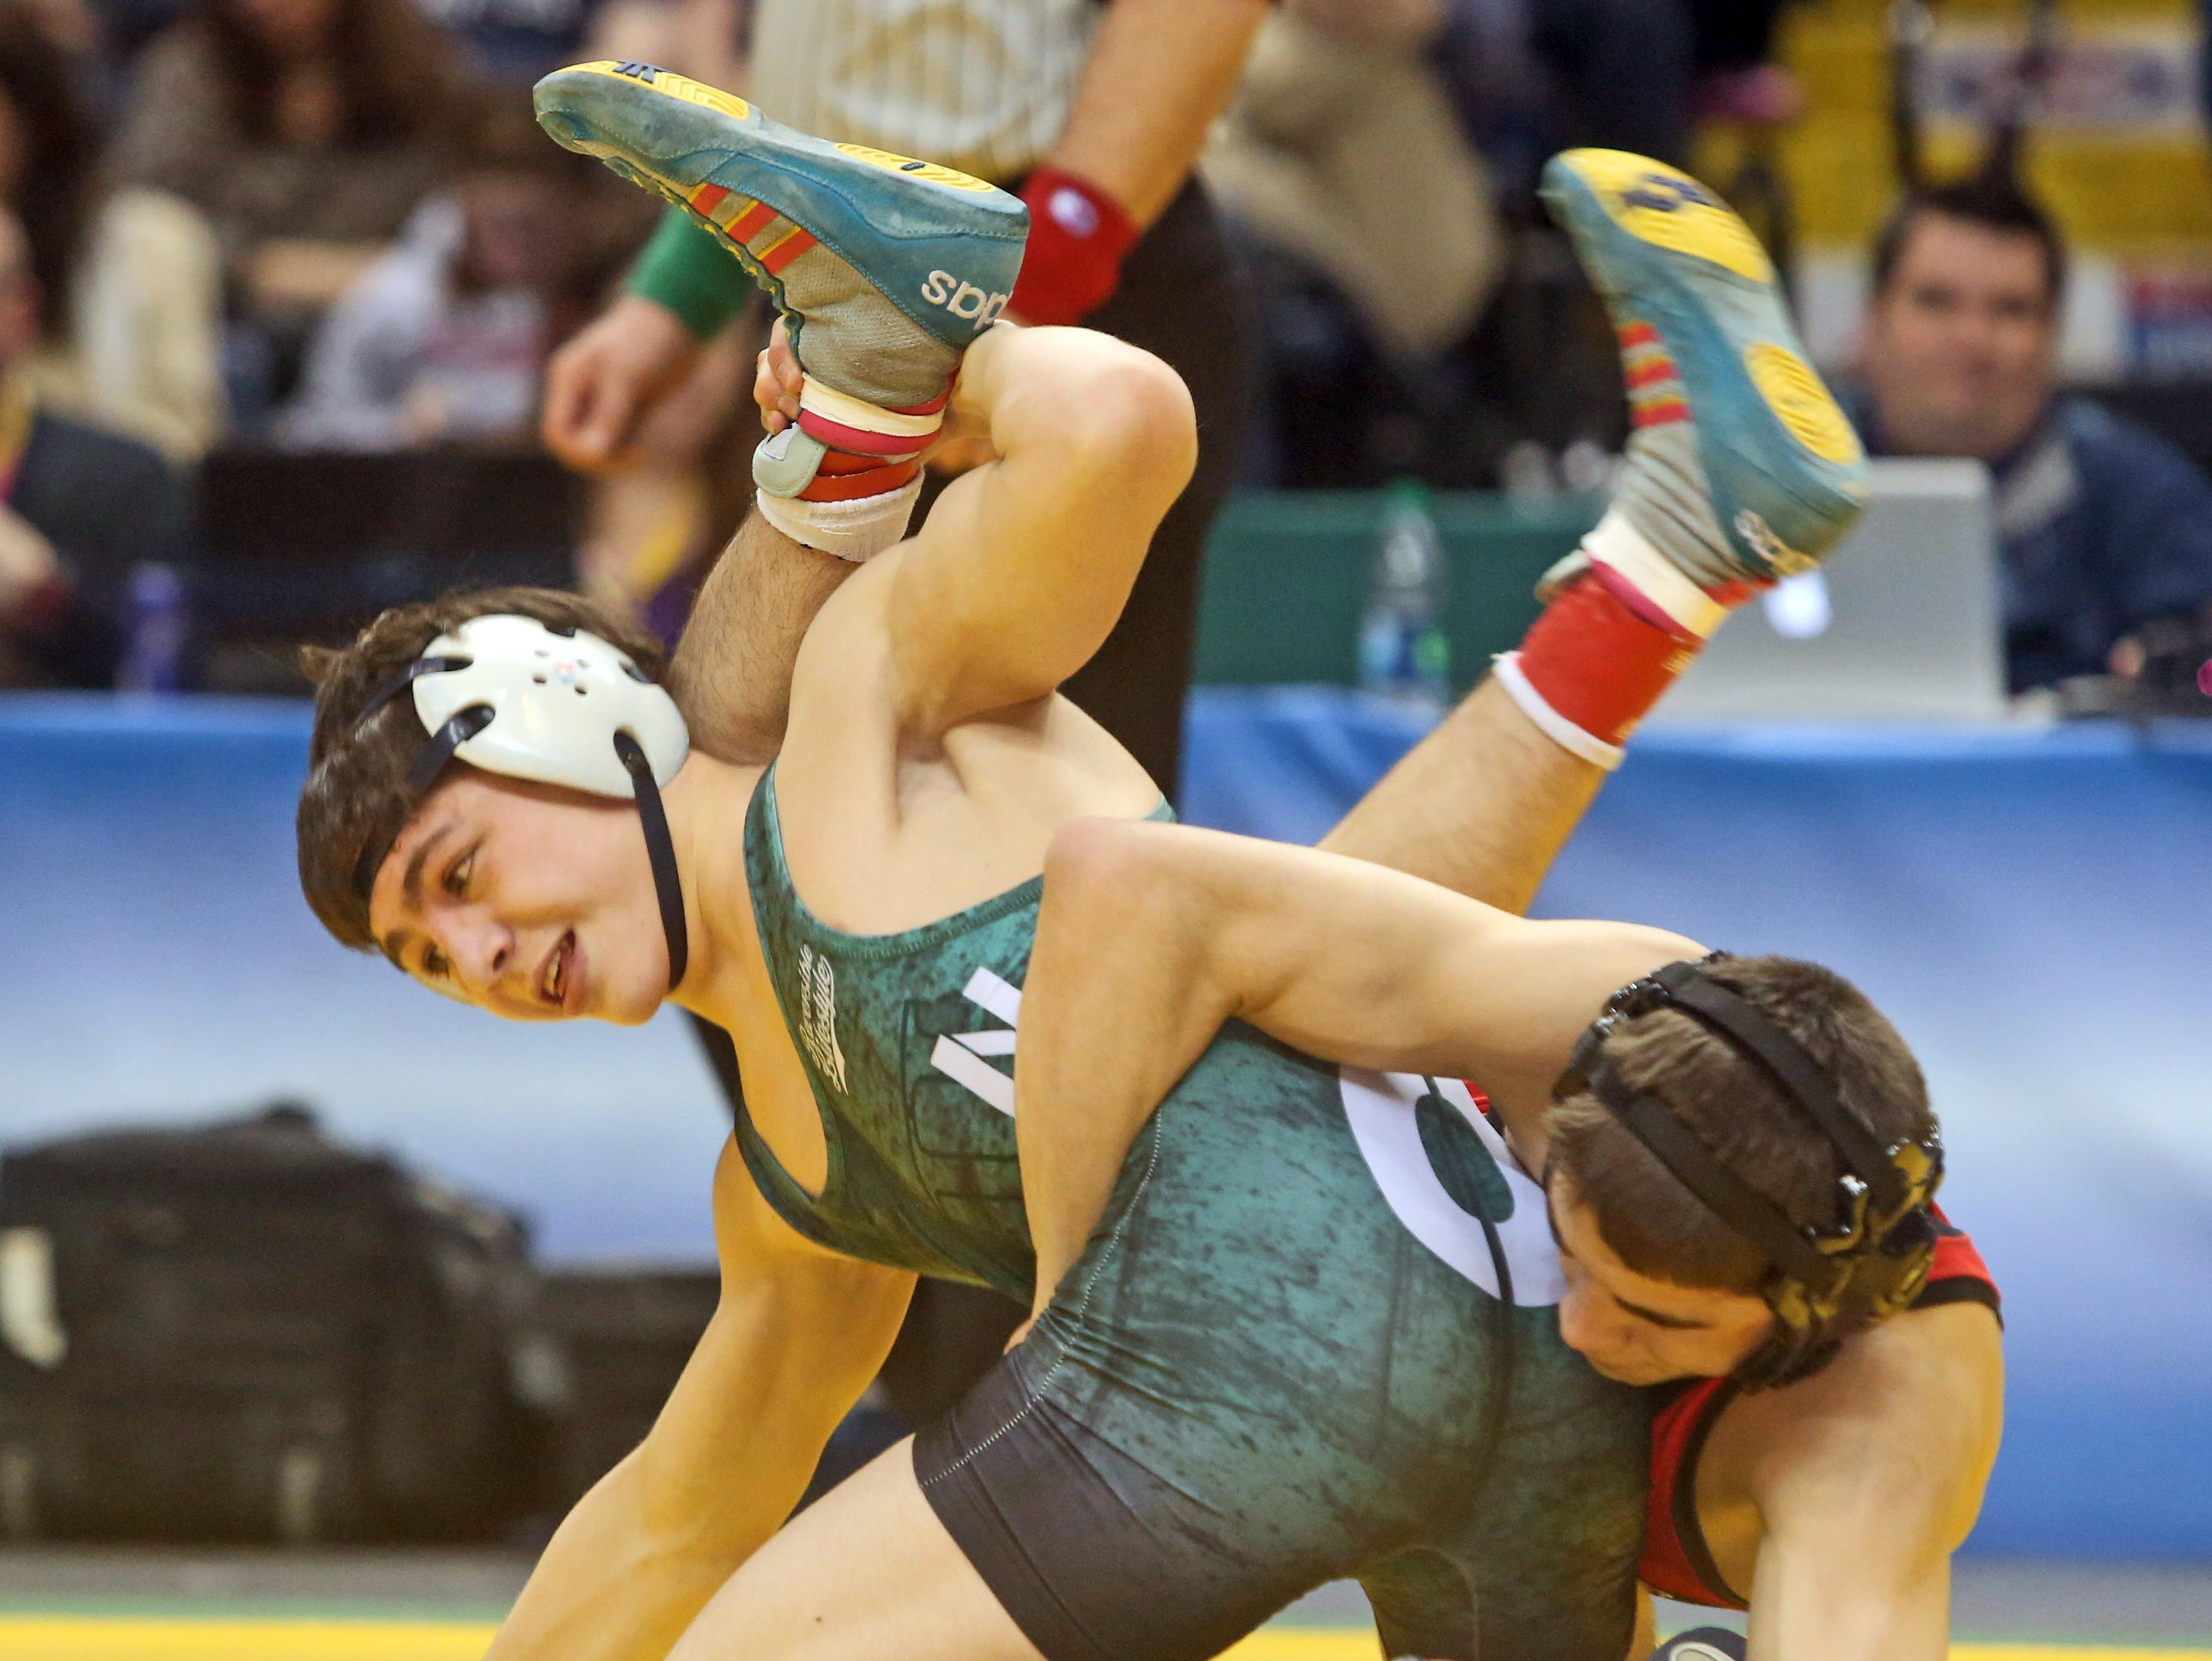 Yianni Diakomihalis of Hilton pinned Peter Pappas of Plainview to win the 120 pound final Saturday at the New York State High School wrestling championships.